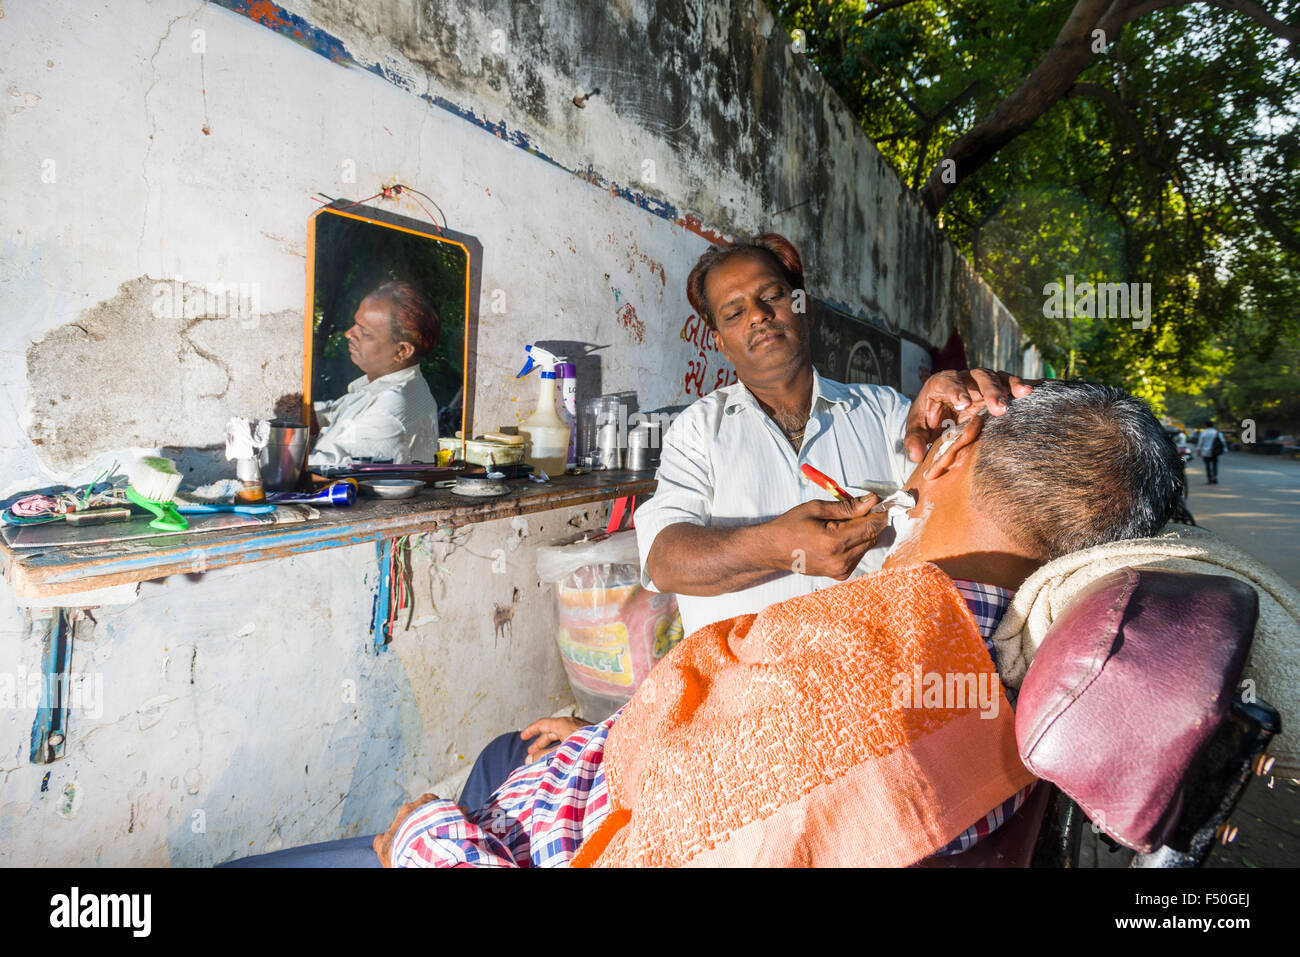 A barber is shaving a customer at his open air shop - Stock Image